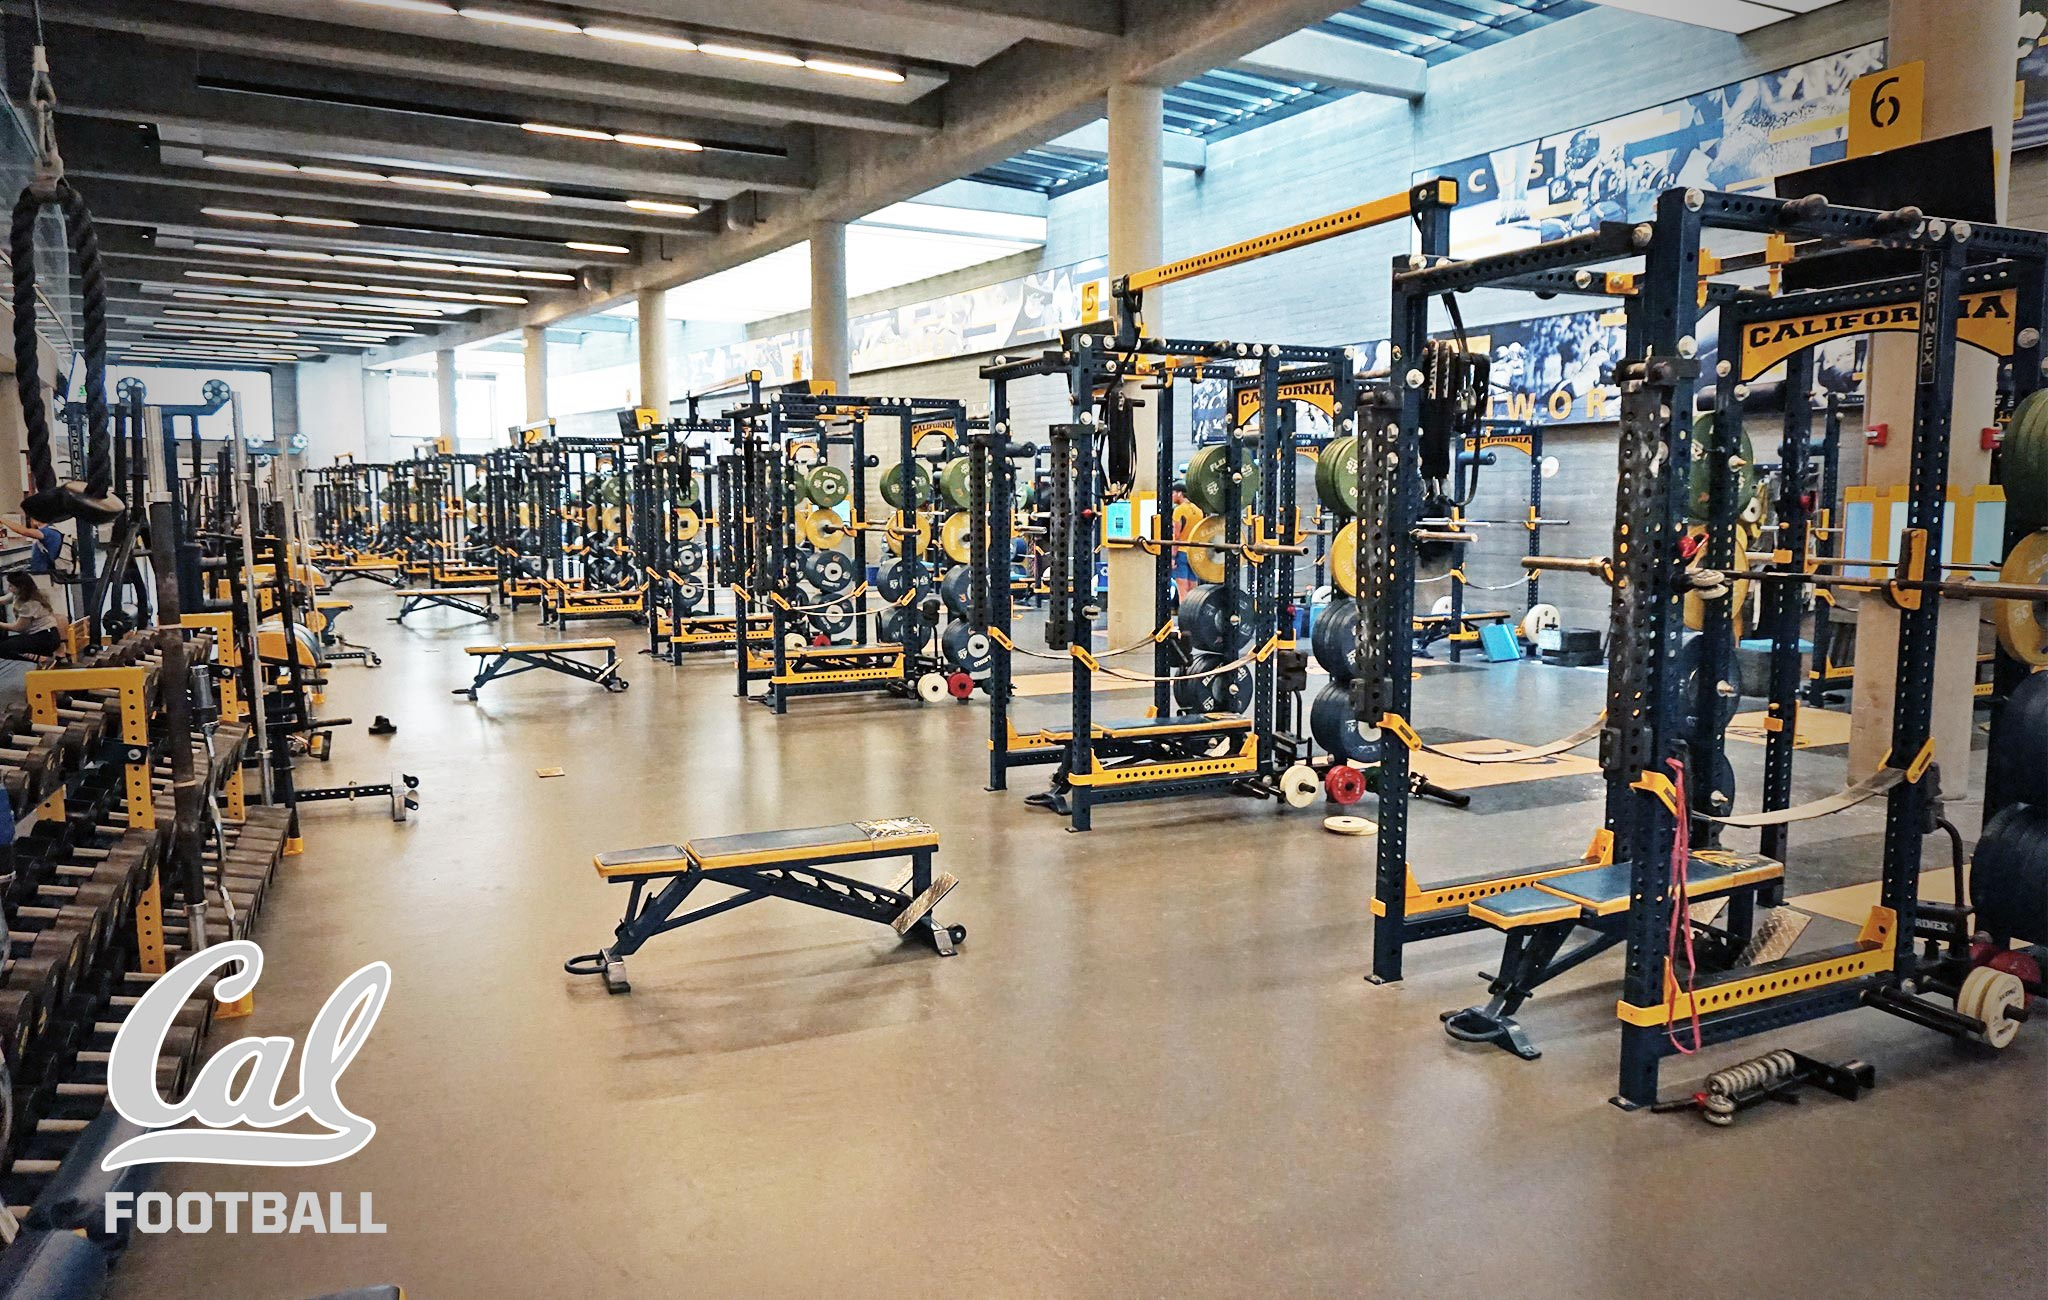 University of california football Sorinex strength and conditioning facility